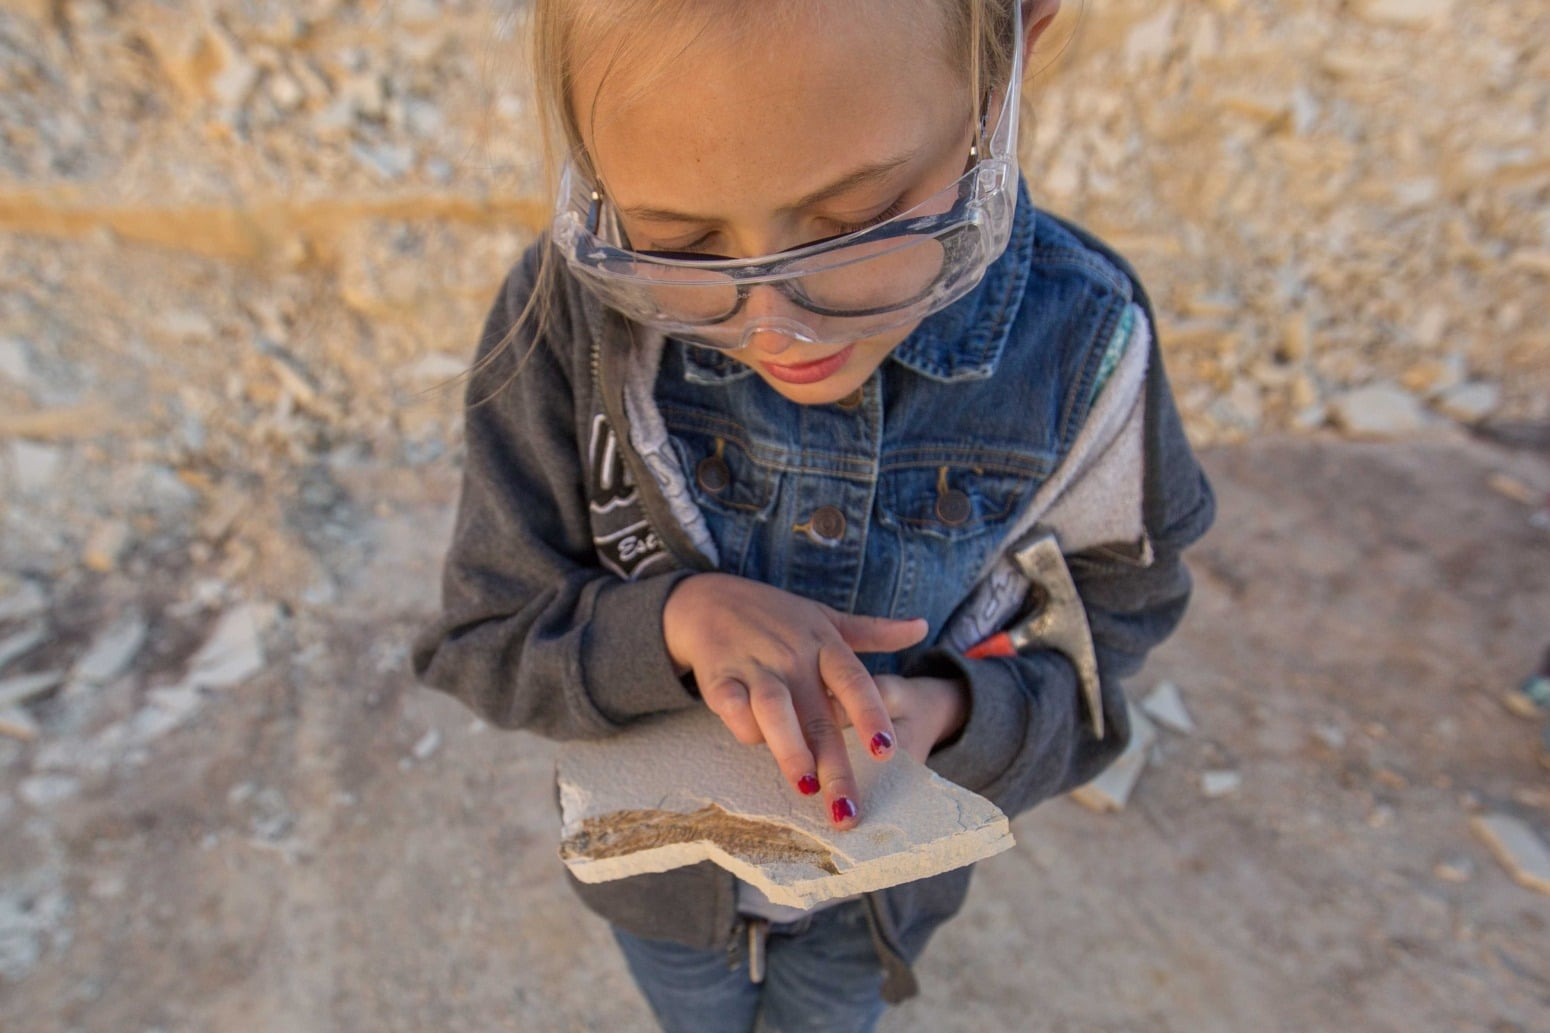 A girl examines a piece of chipped rock.